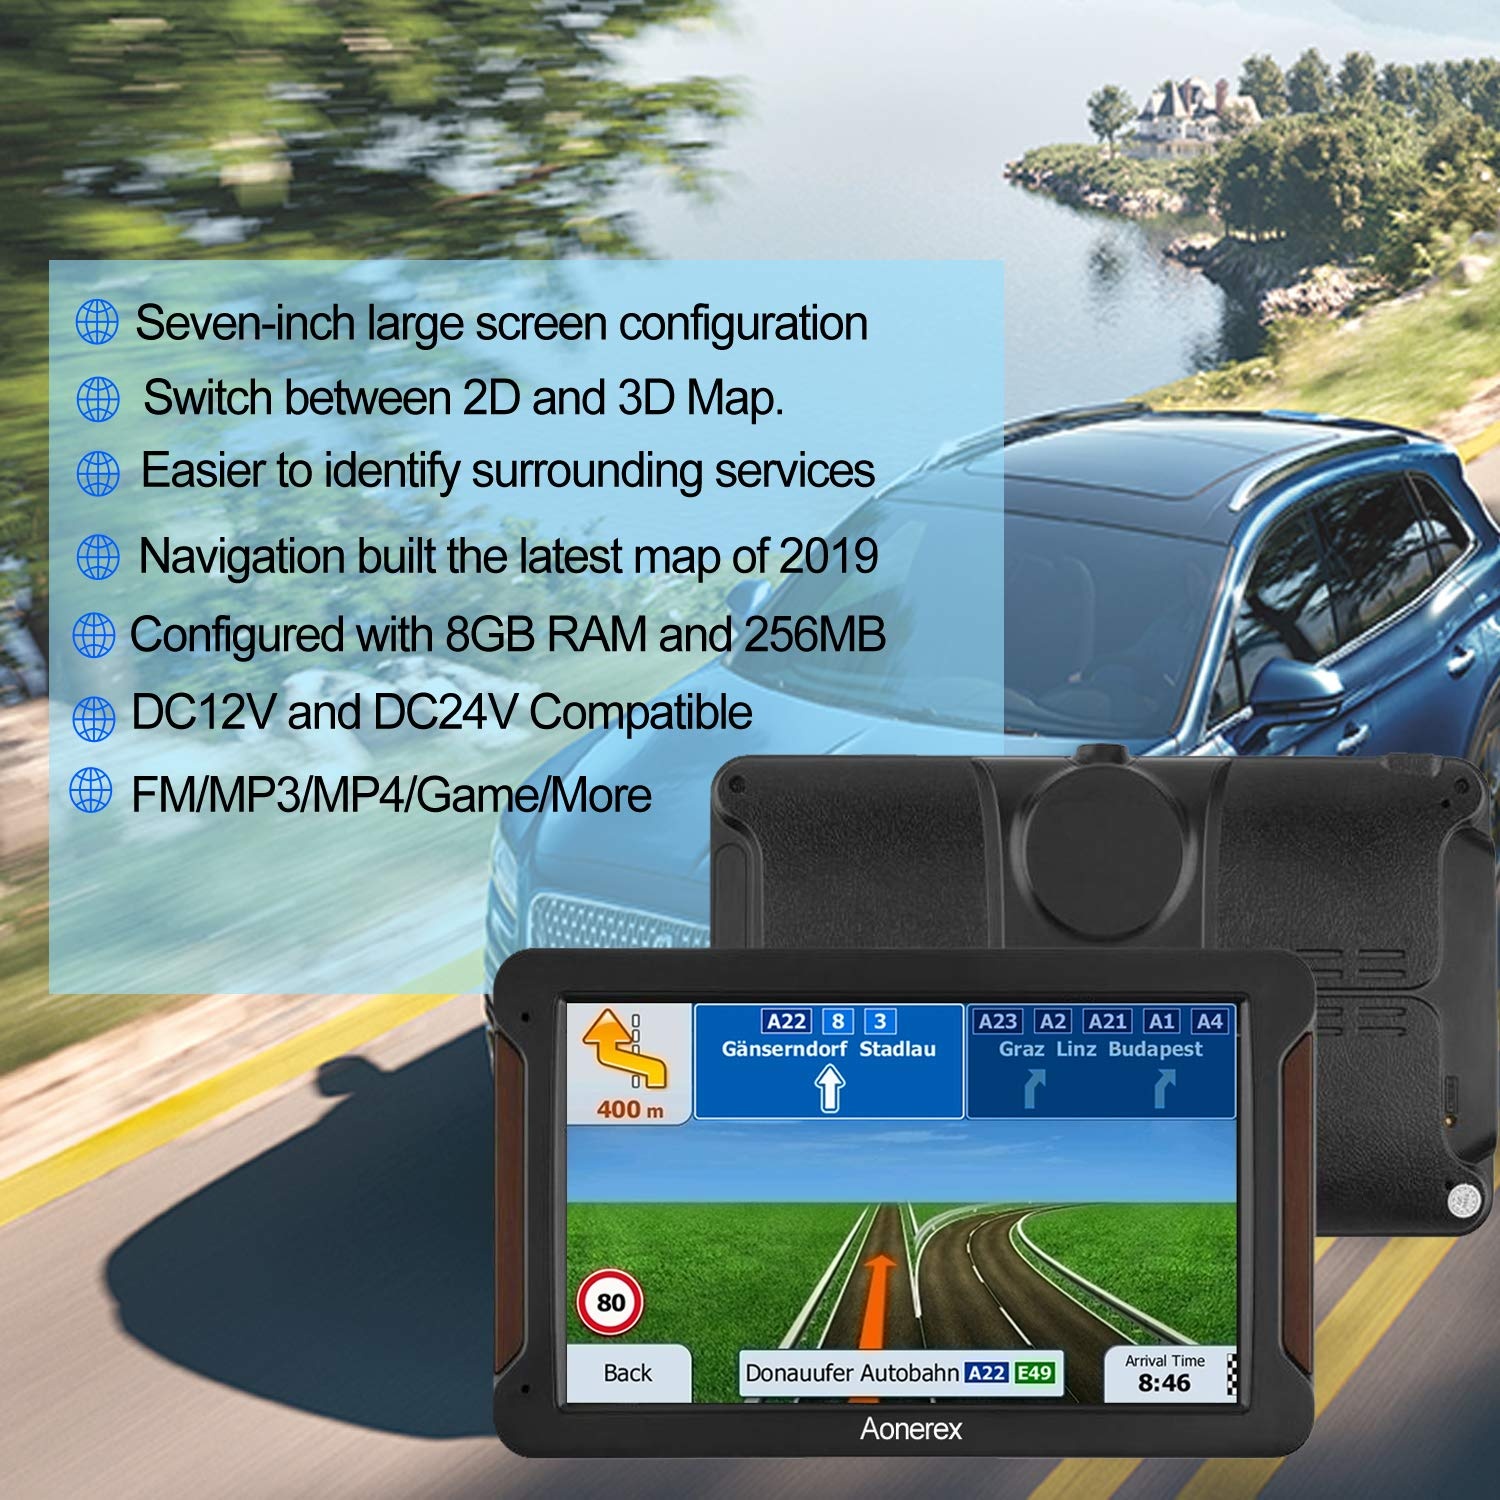 AONEREX GPS Navigation 7inch HD-8GB 256Mb Car GPS Navigation, Voice Traffic Warning,Speed Limit Reminder Satellite Navigation System with Non-Slip Car Bracket Holder-Lifetime Free Map Updates by Aonerex (Image #2)